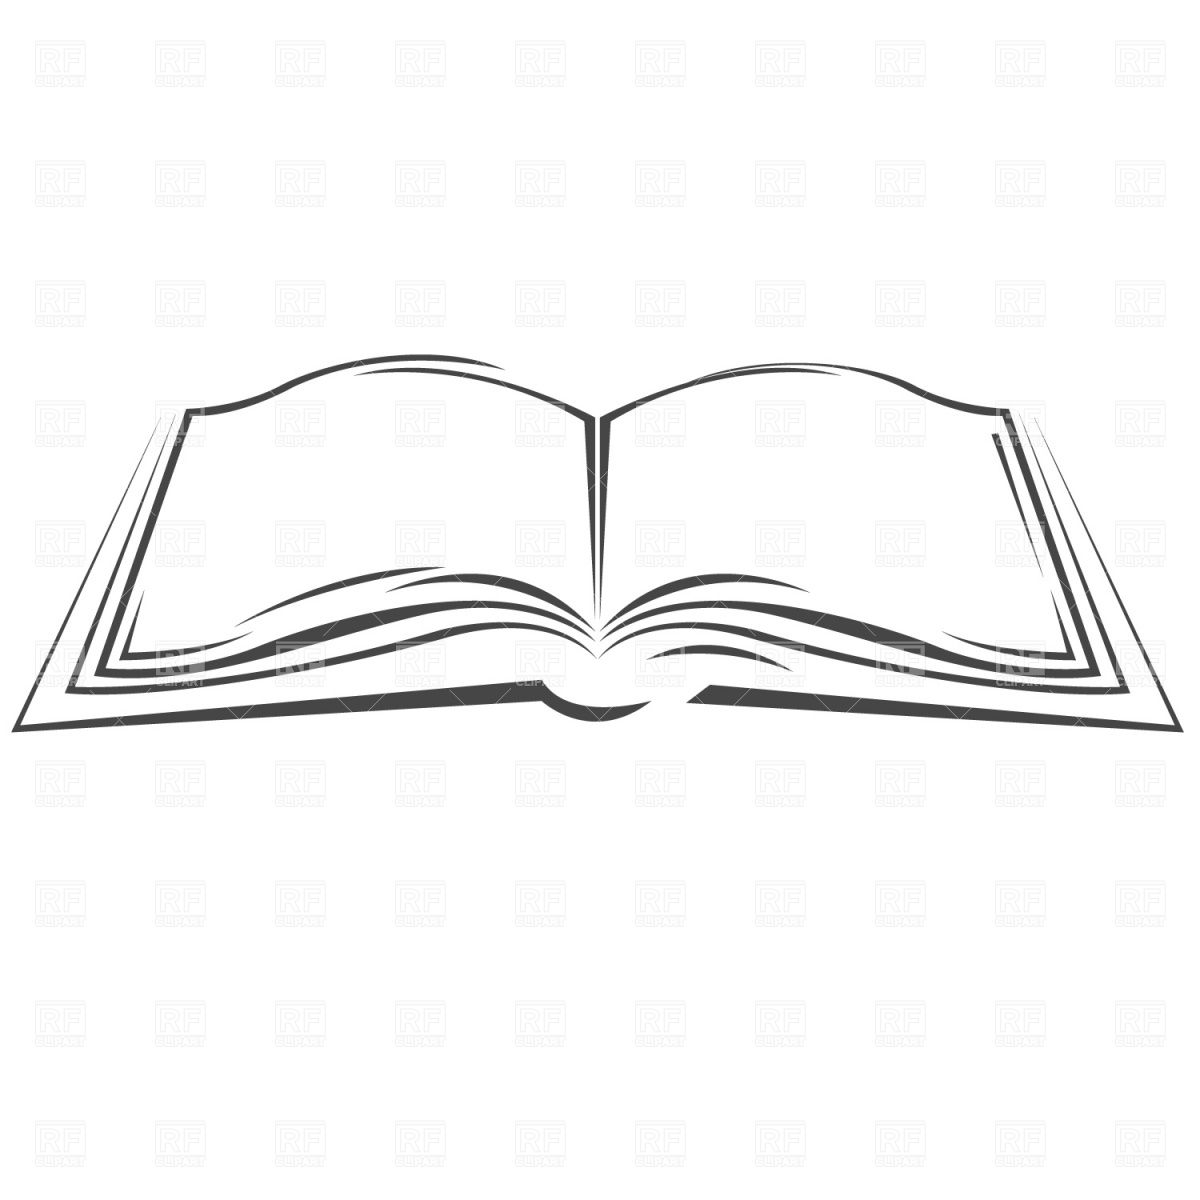 hight resolution of symbolic open book download royalty free vector clipart eps